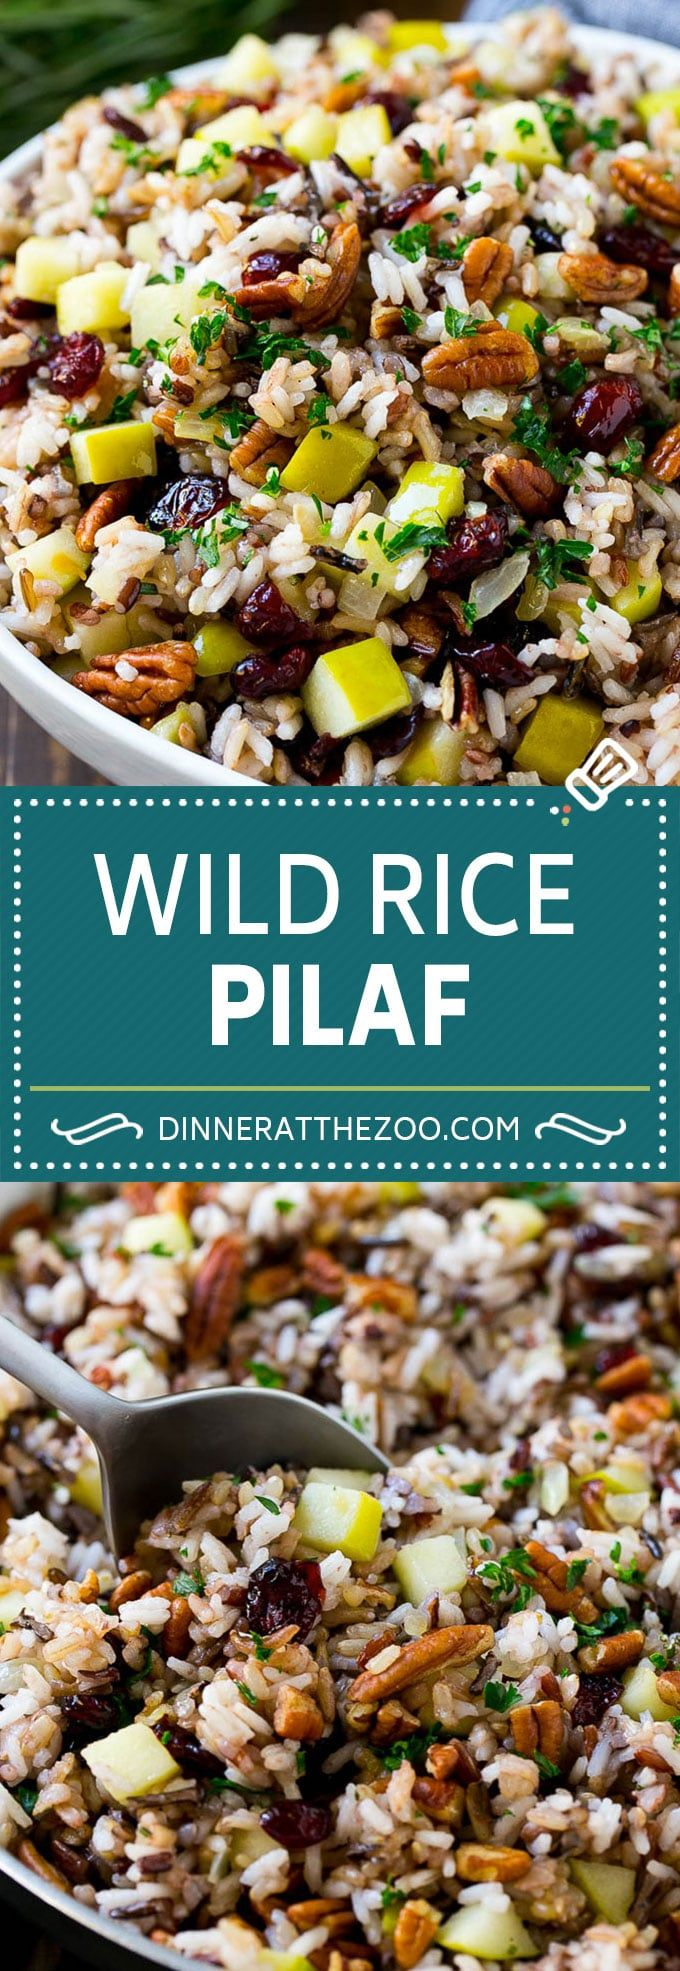 Wild Rice Pilaf Recipe | Thanksgiving Side Dish | Rice Pilaf #rice #apple #cranberry #fall #glutenfree #thanksgiving #dinneratthezoo #chickensidedishes